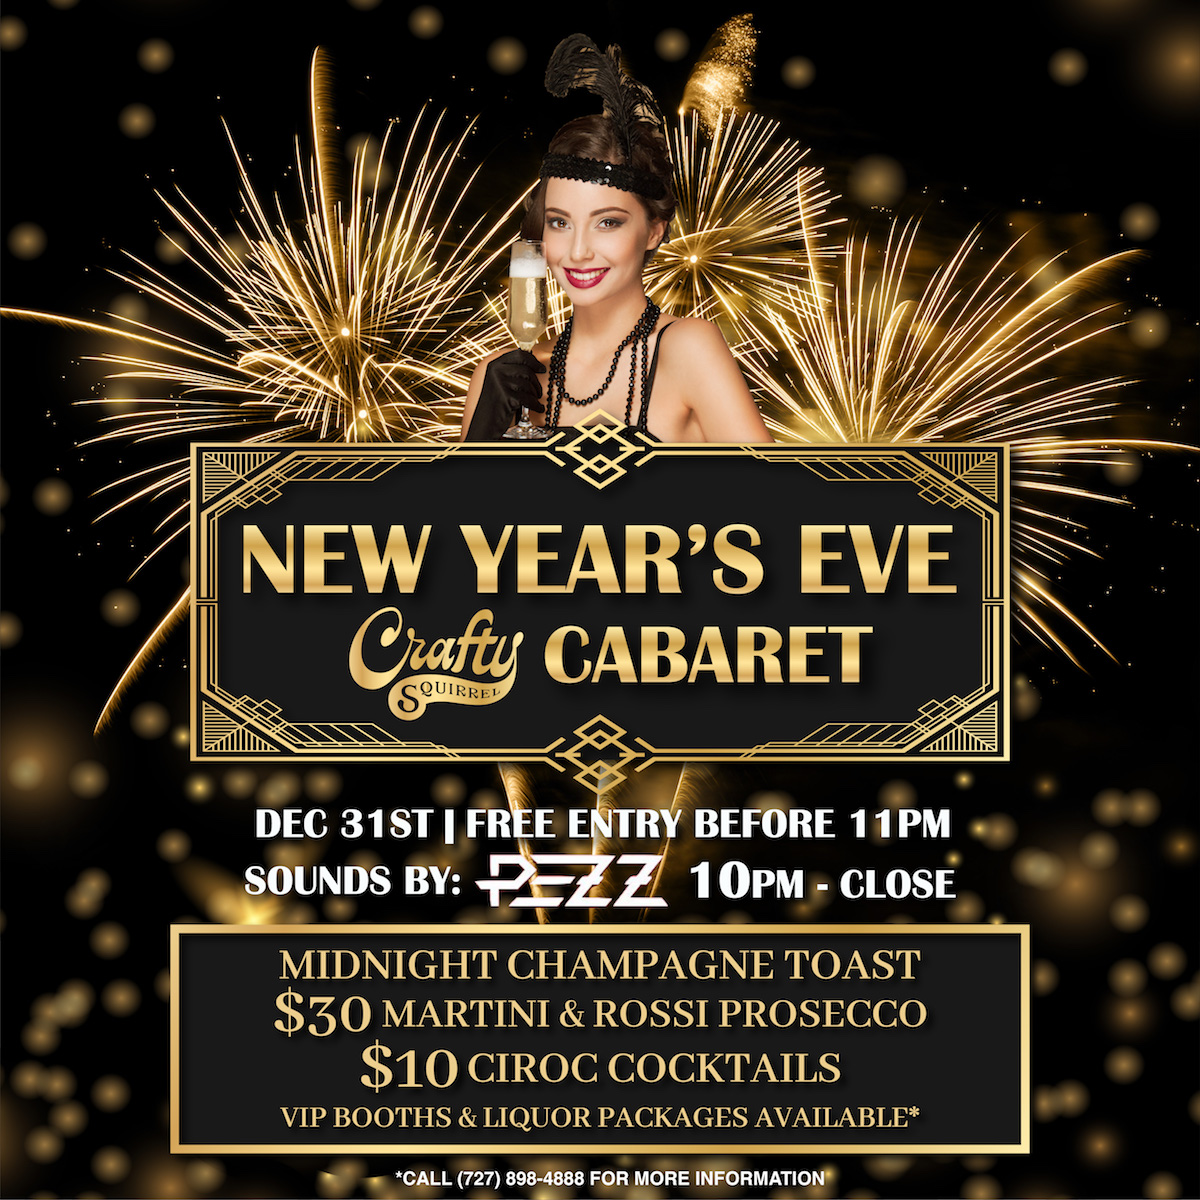 It's A Champagne Wishes and Cabaret Dreams Dance Party for Crafty Squirrel's NYE 2020 Bash